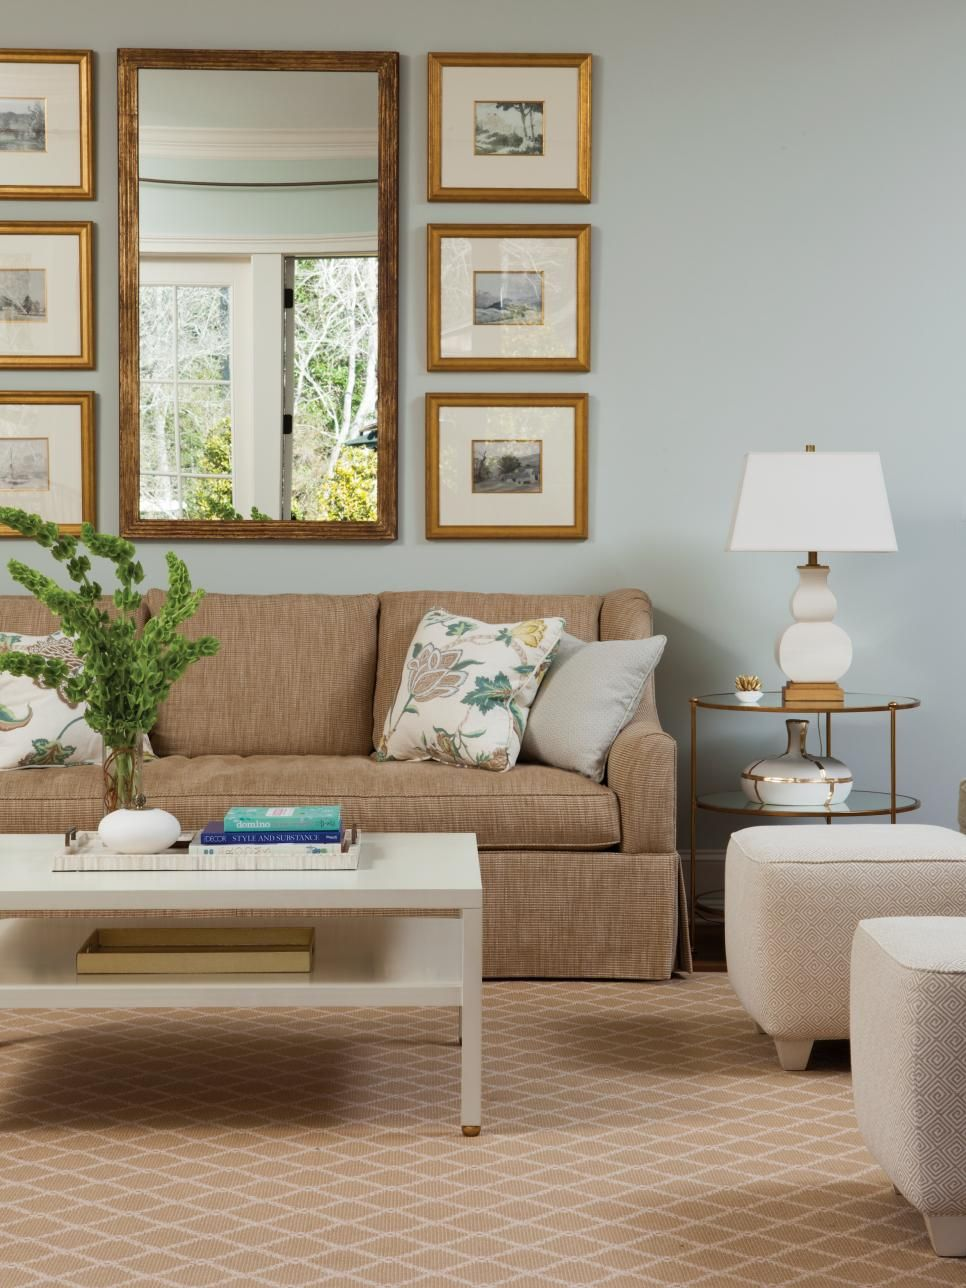 Best Light Blue Walls Are Paired With Neutral Furniture And 400 x 300